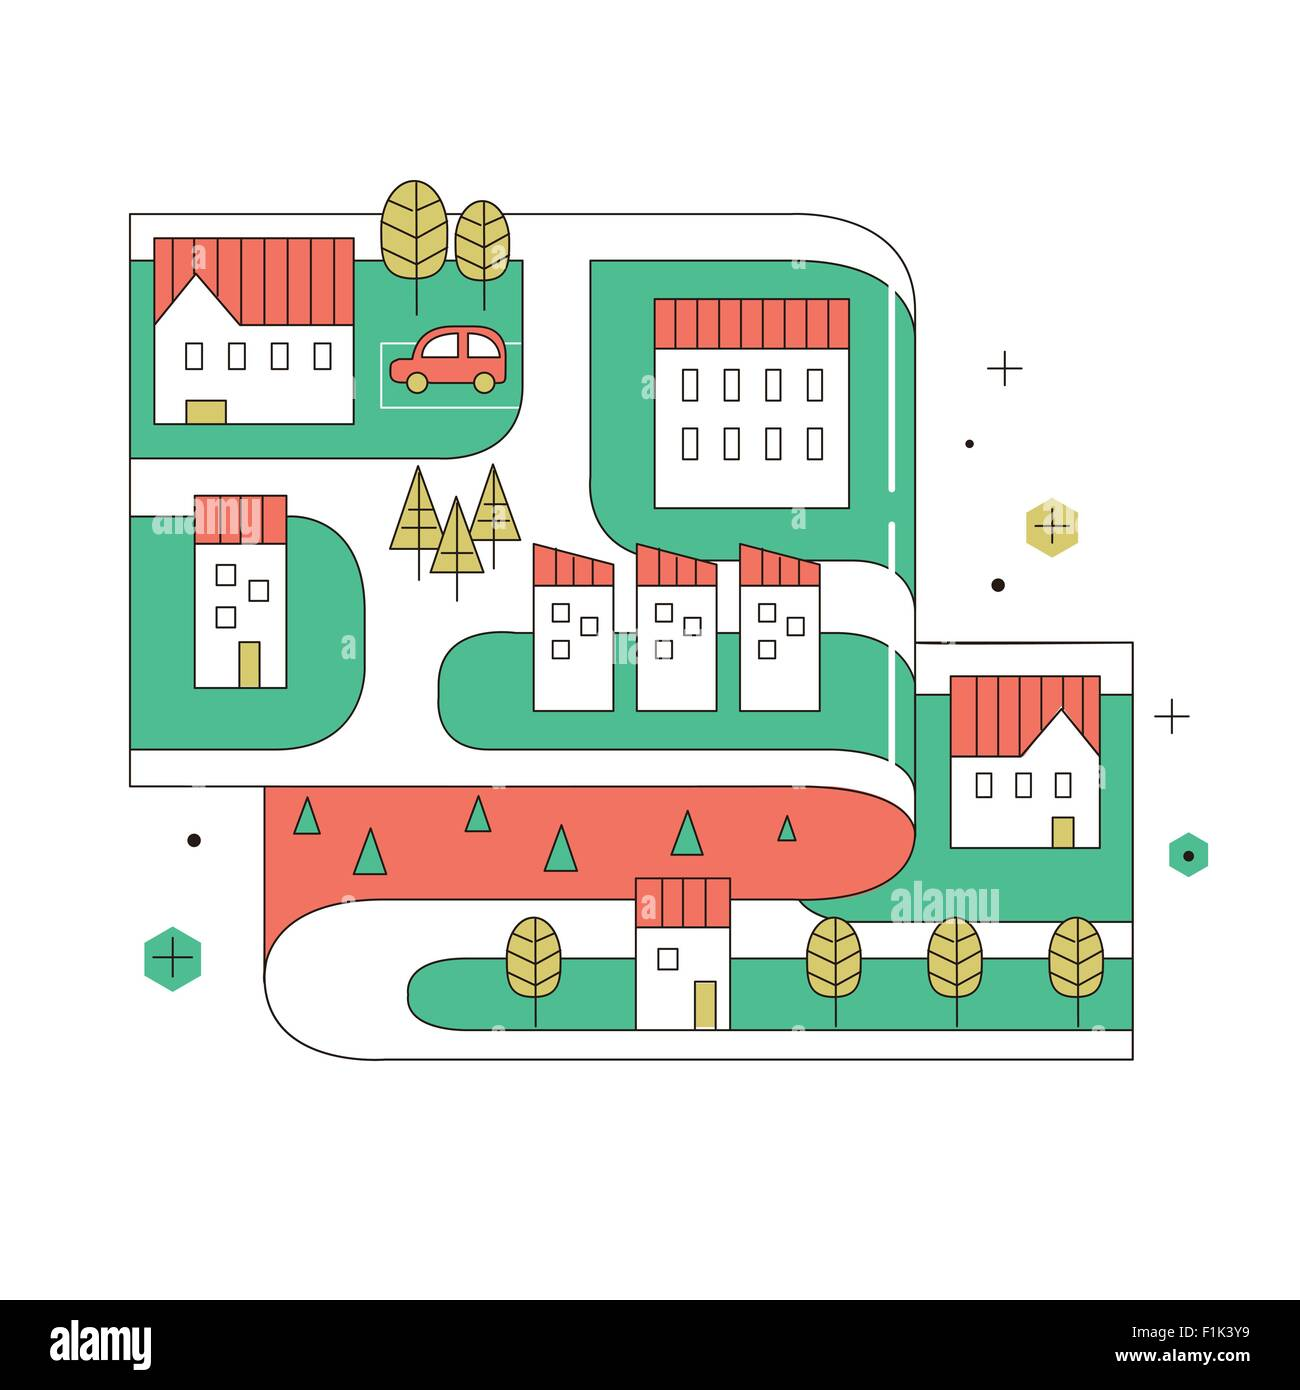 Street Map Of Small Town In Thin Line Flat Design Stock